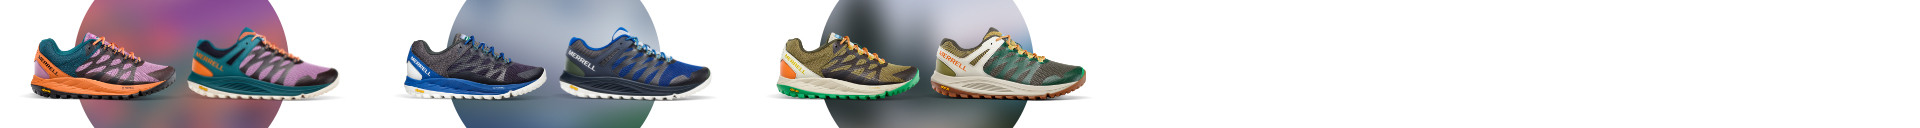 Assorted Merrell See America Collection shoes.